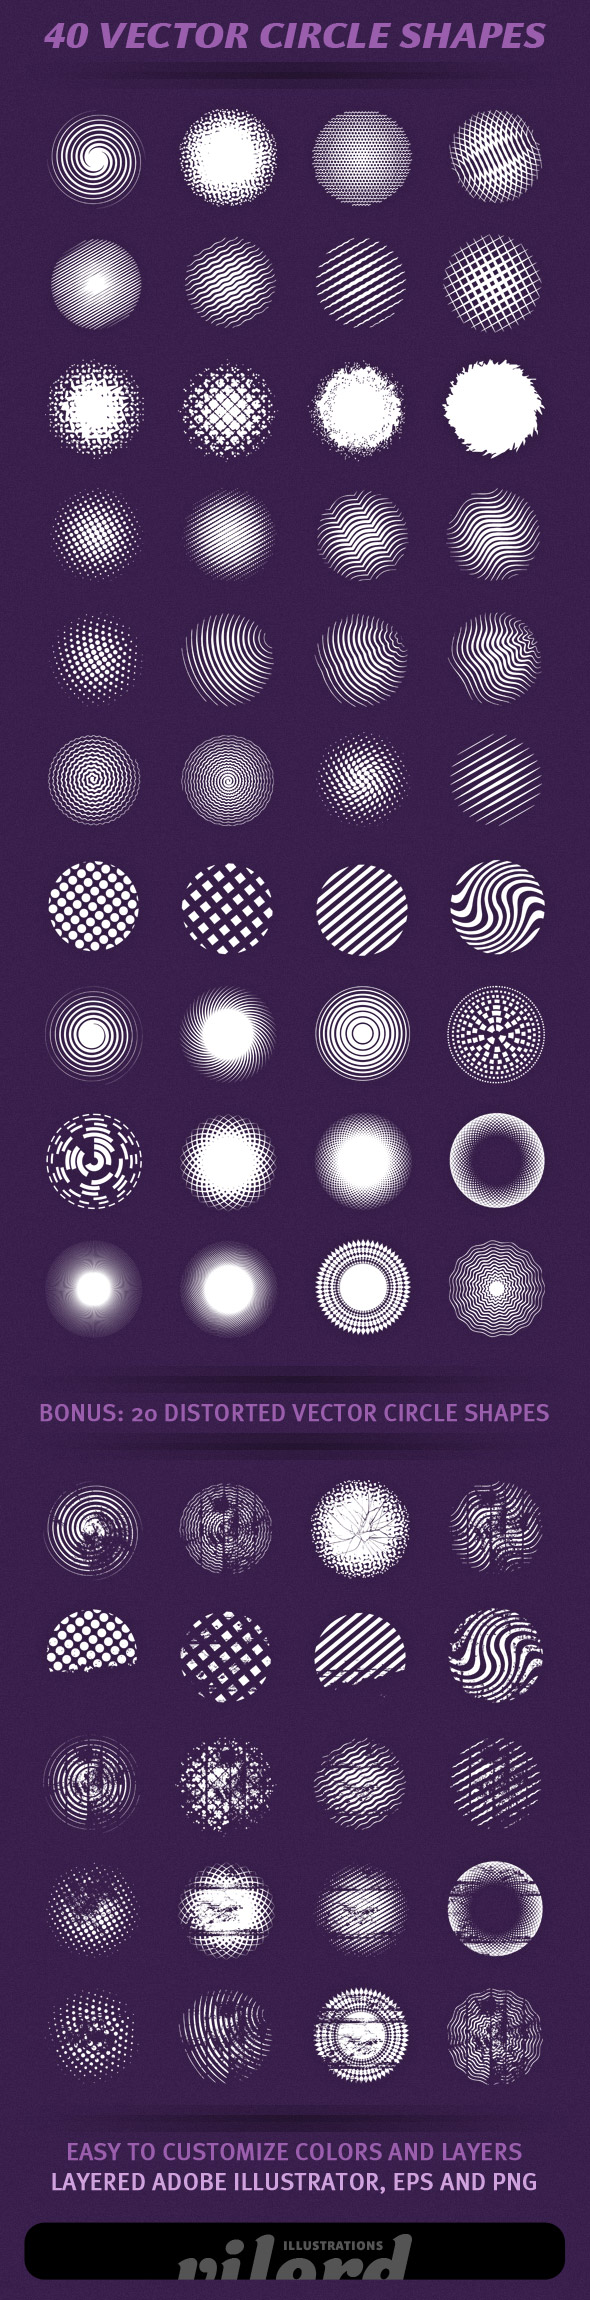 Great vector shapes for your projects